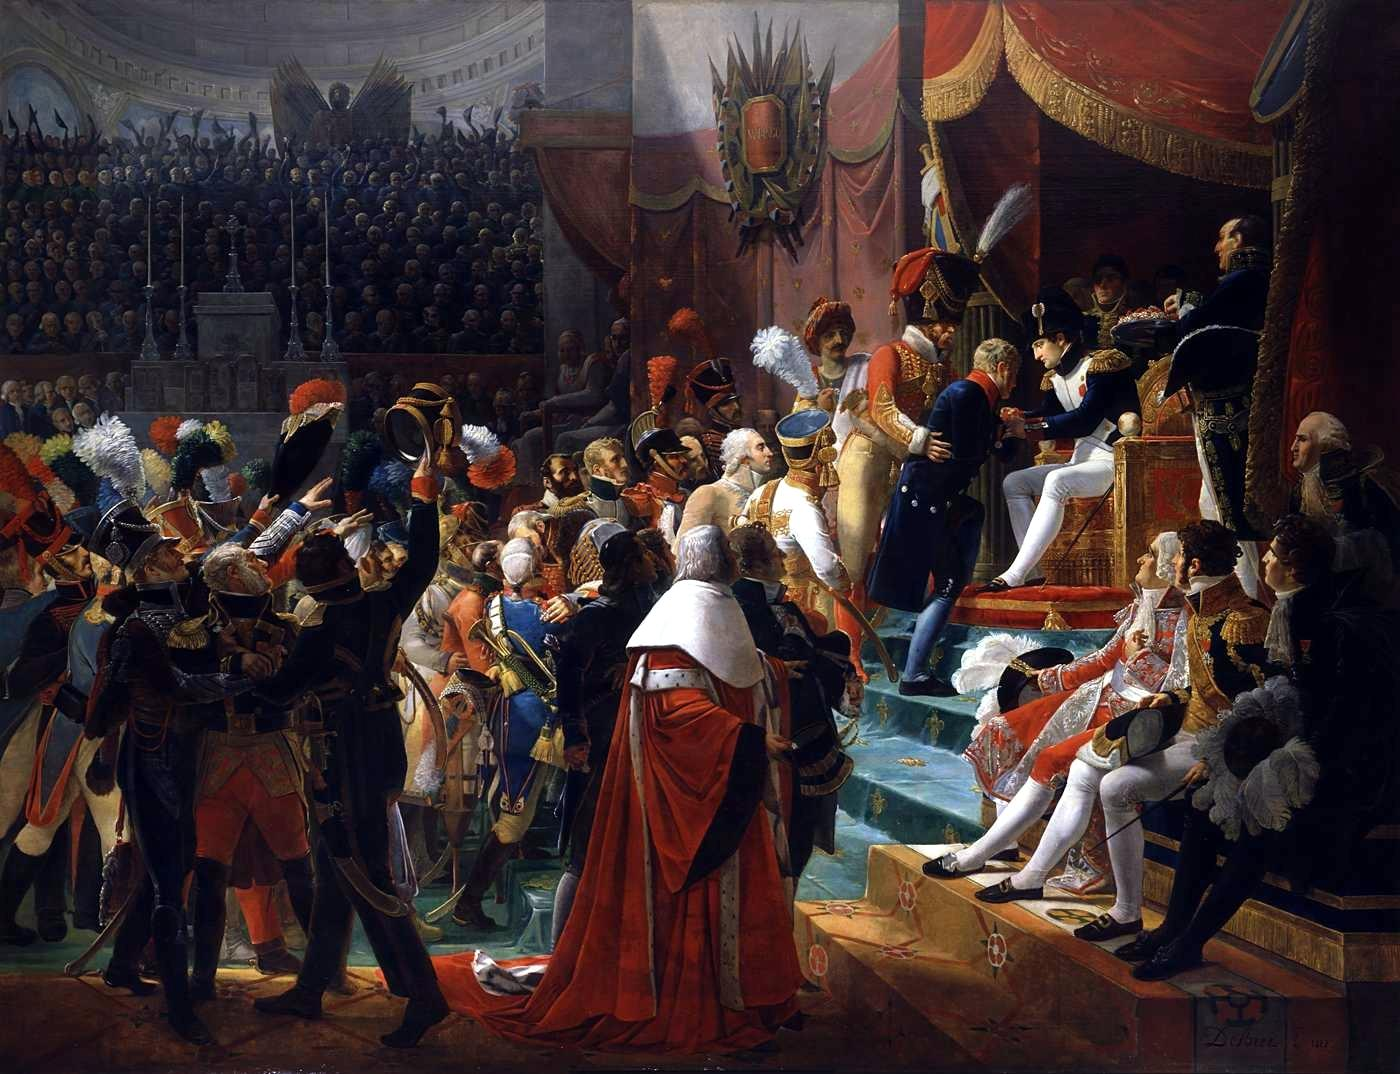 First remittance of the Légion d'Honneur, 15 July 1804, at Saint-Louis des Invalides, by Jean-Baptiste Debret (1812).